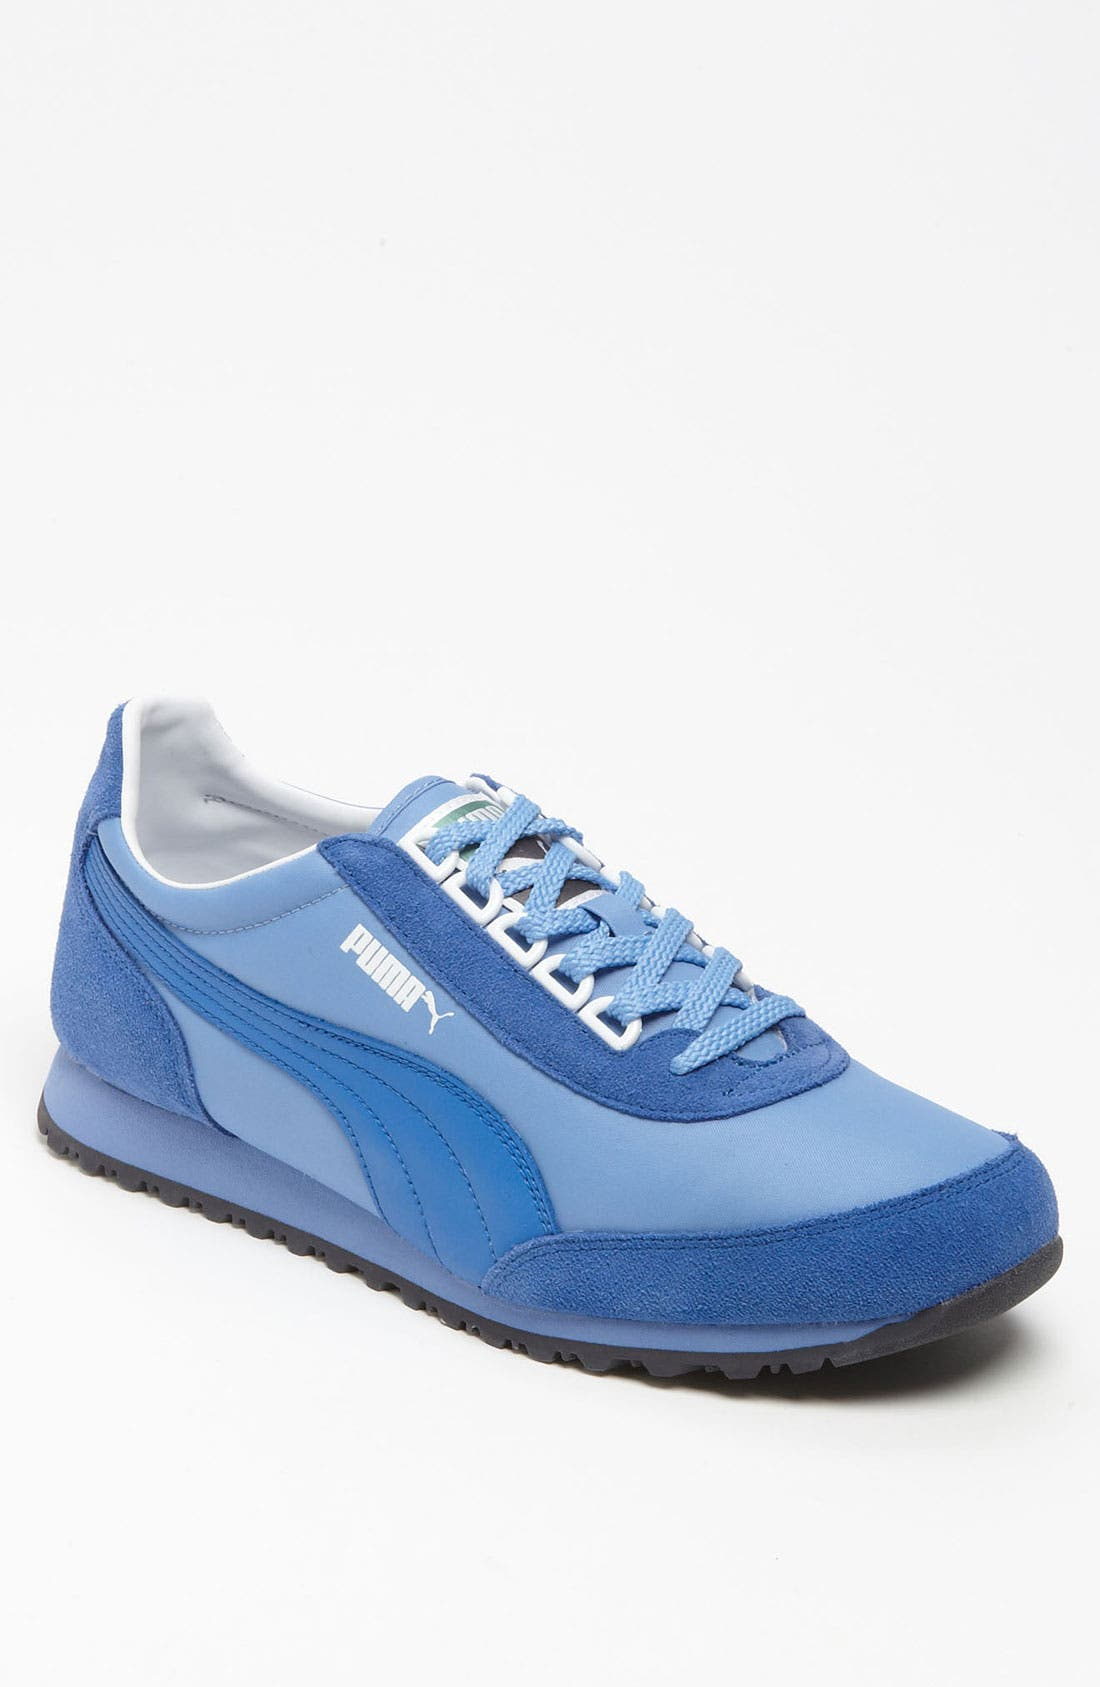 Alternate Image 1 Selected - PUMA 'Zoditrack82' Sneaker (Men)